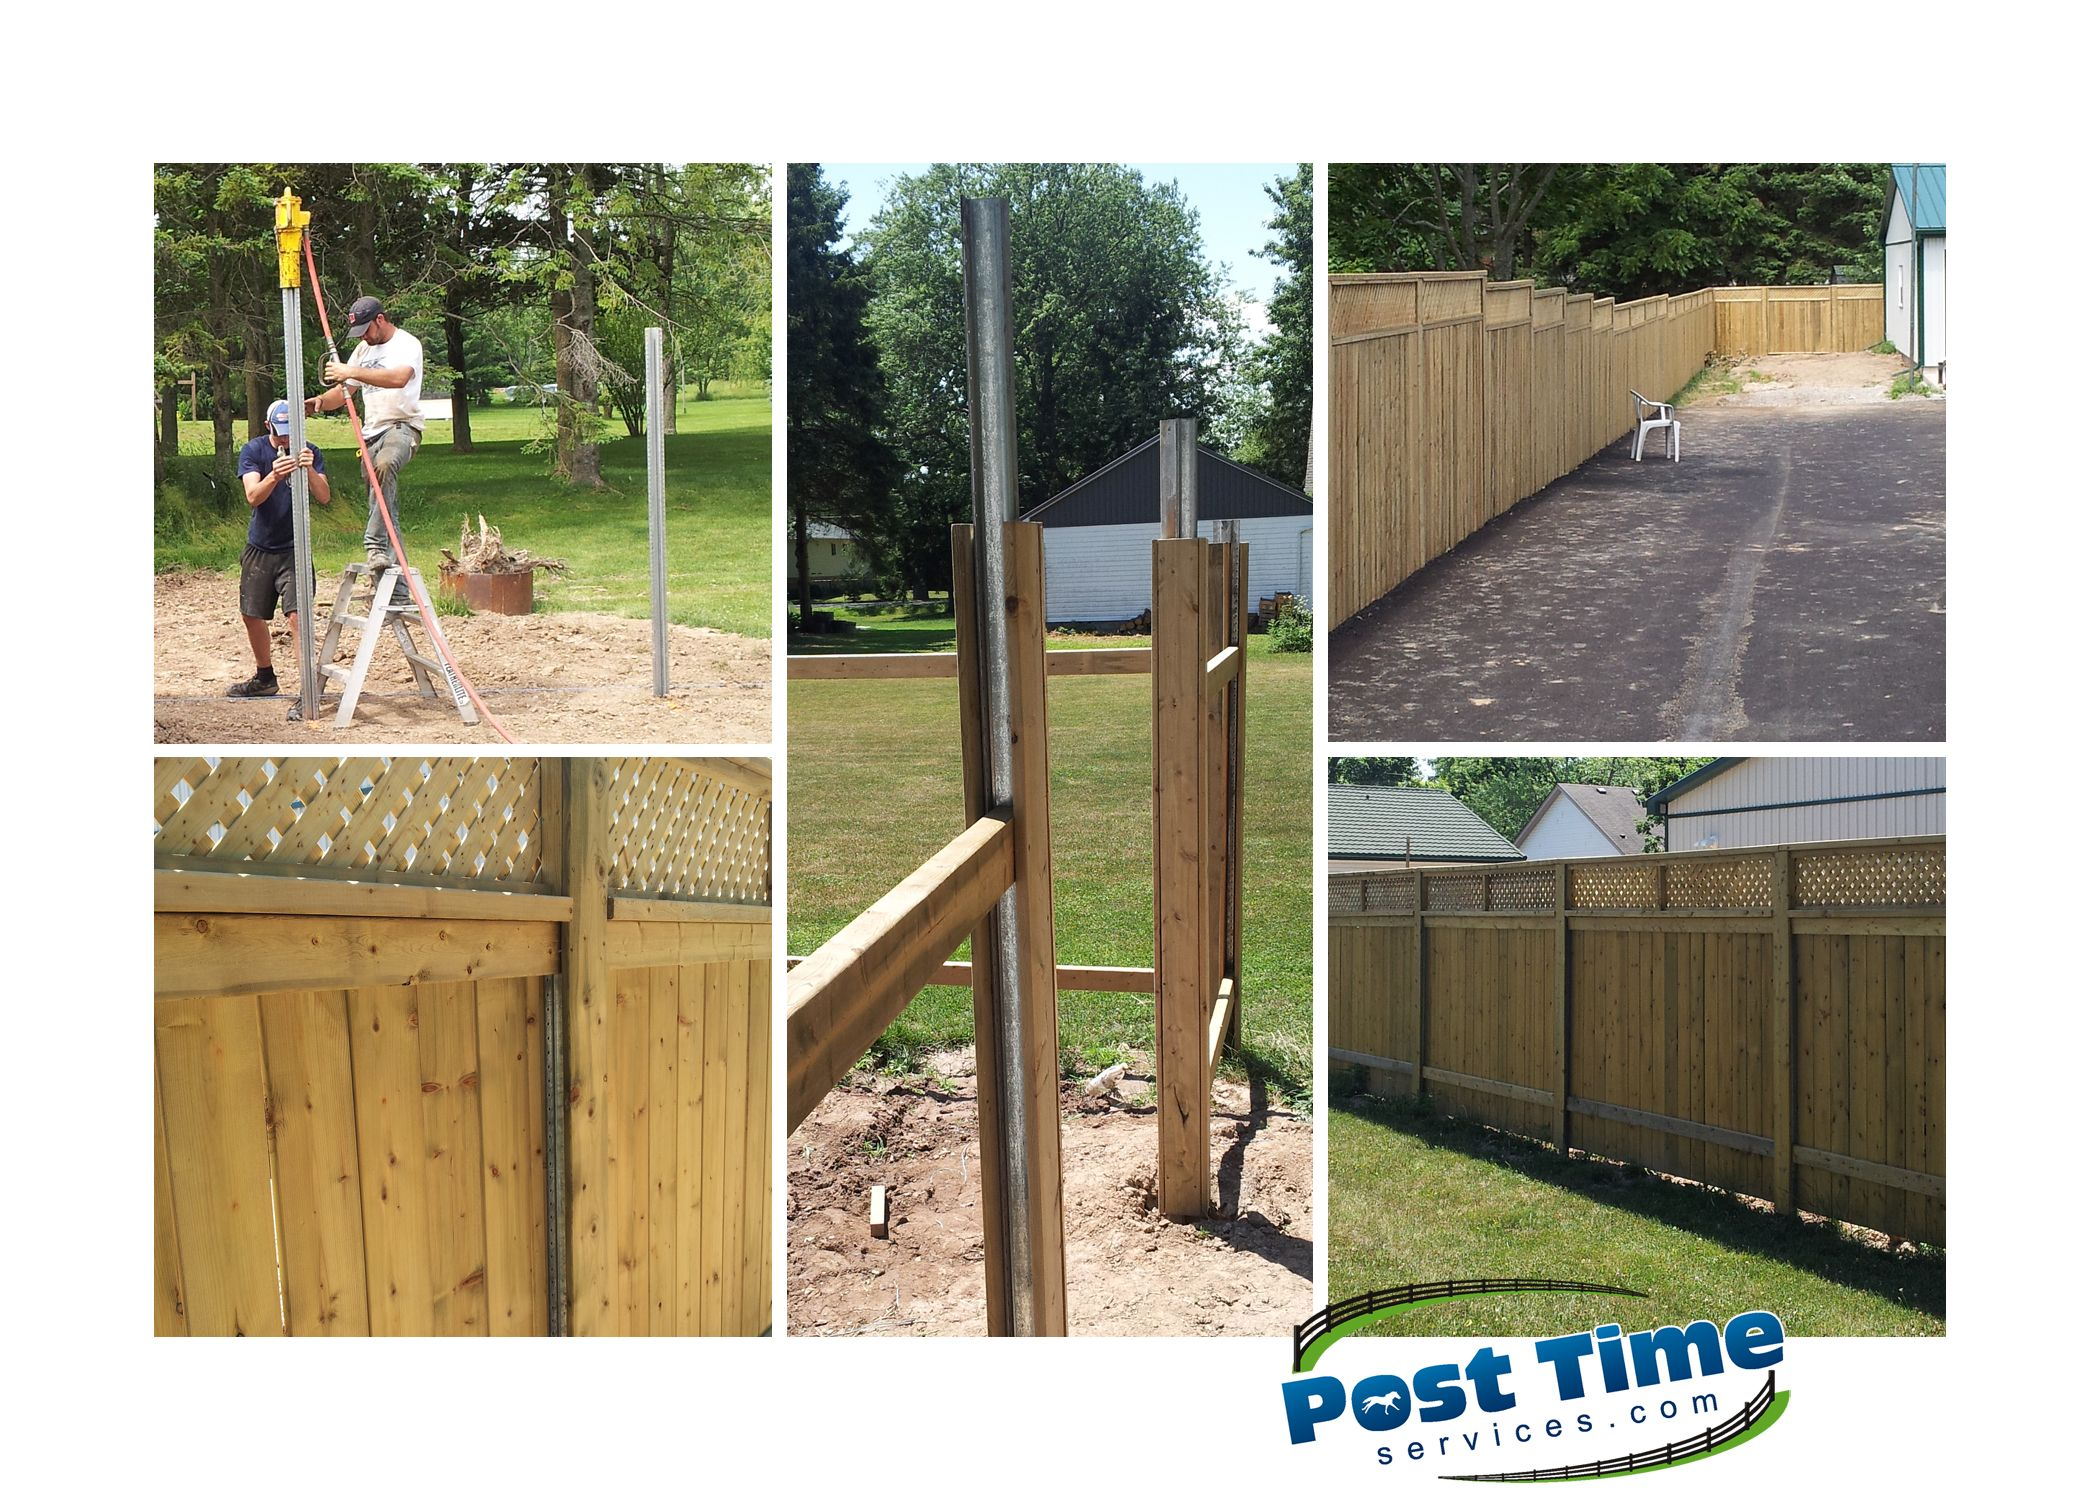 Wood Privacy Fence Installed On Steel Posts Pounded Into Soil